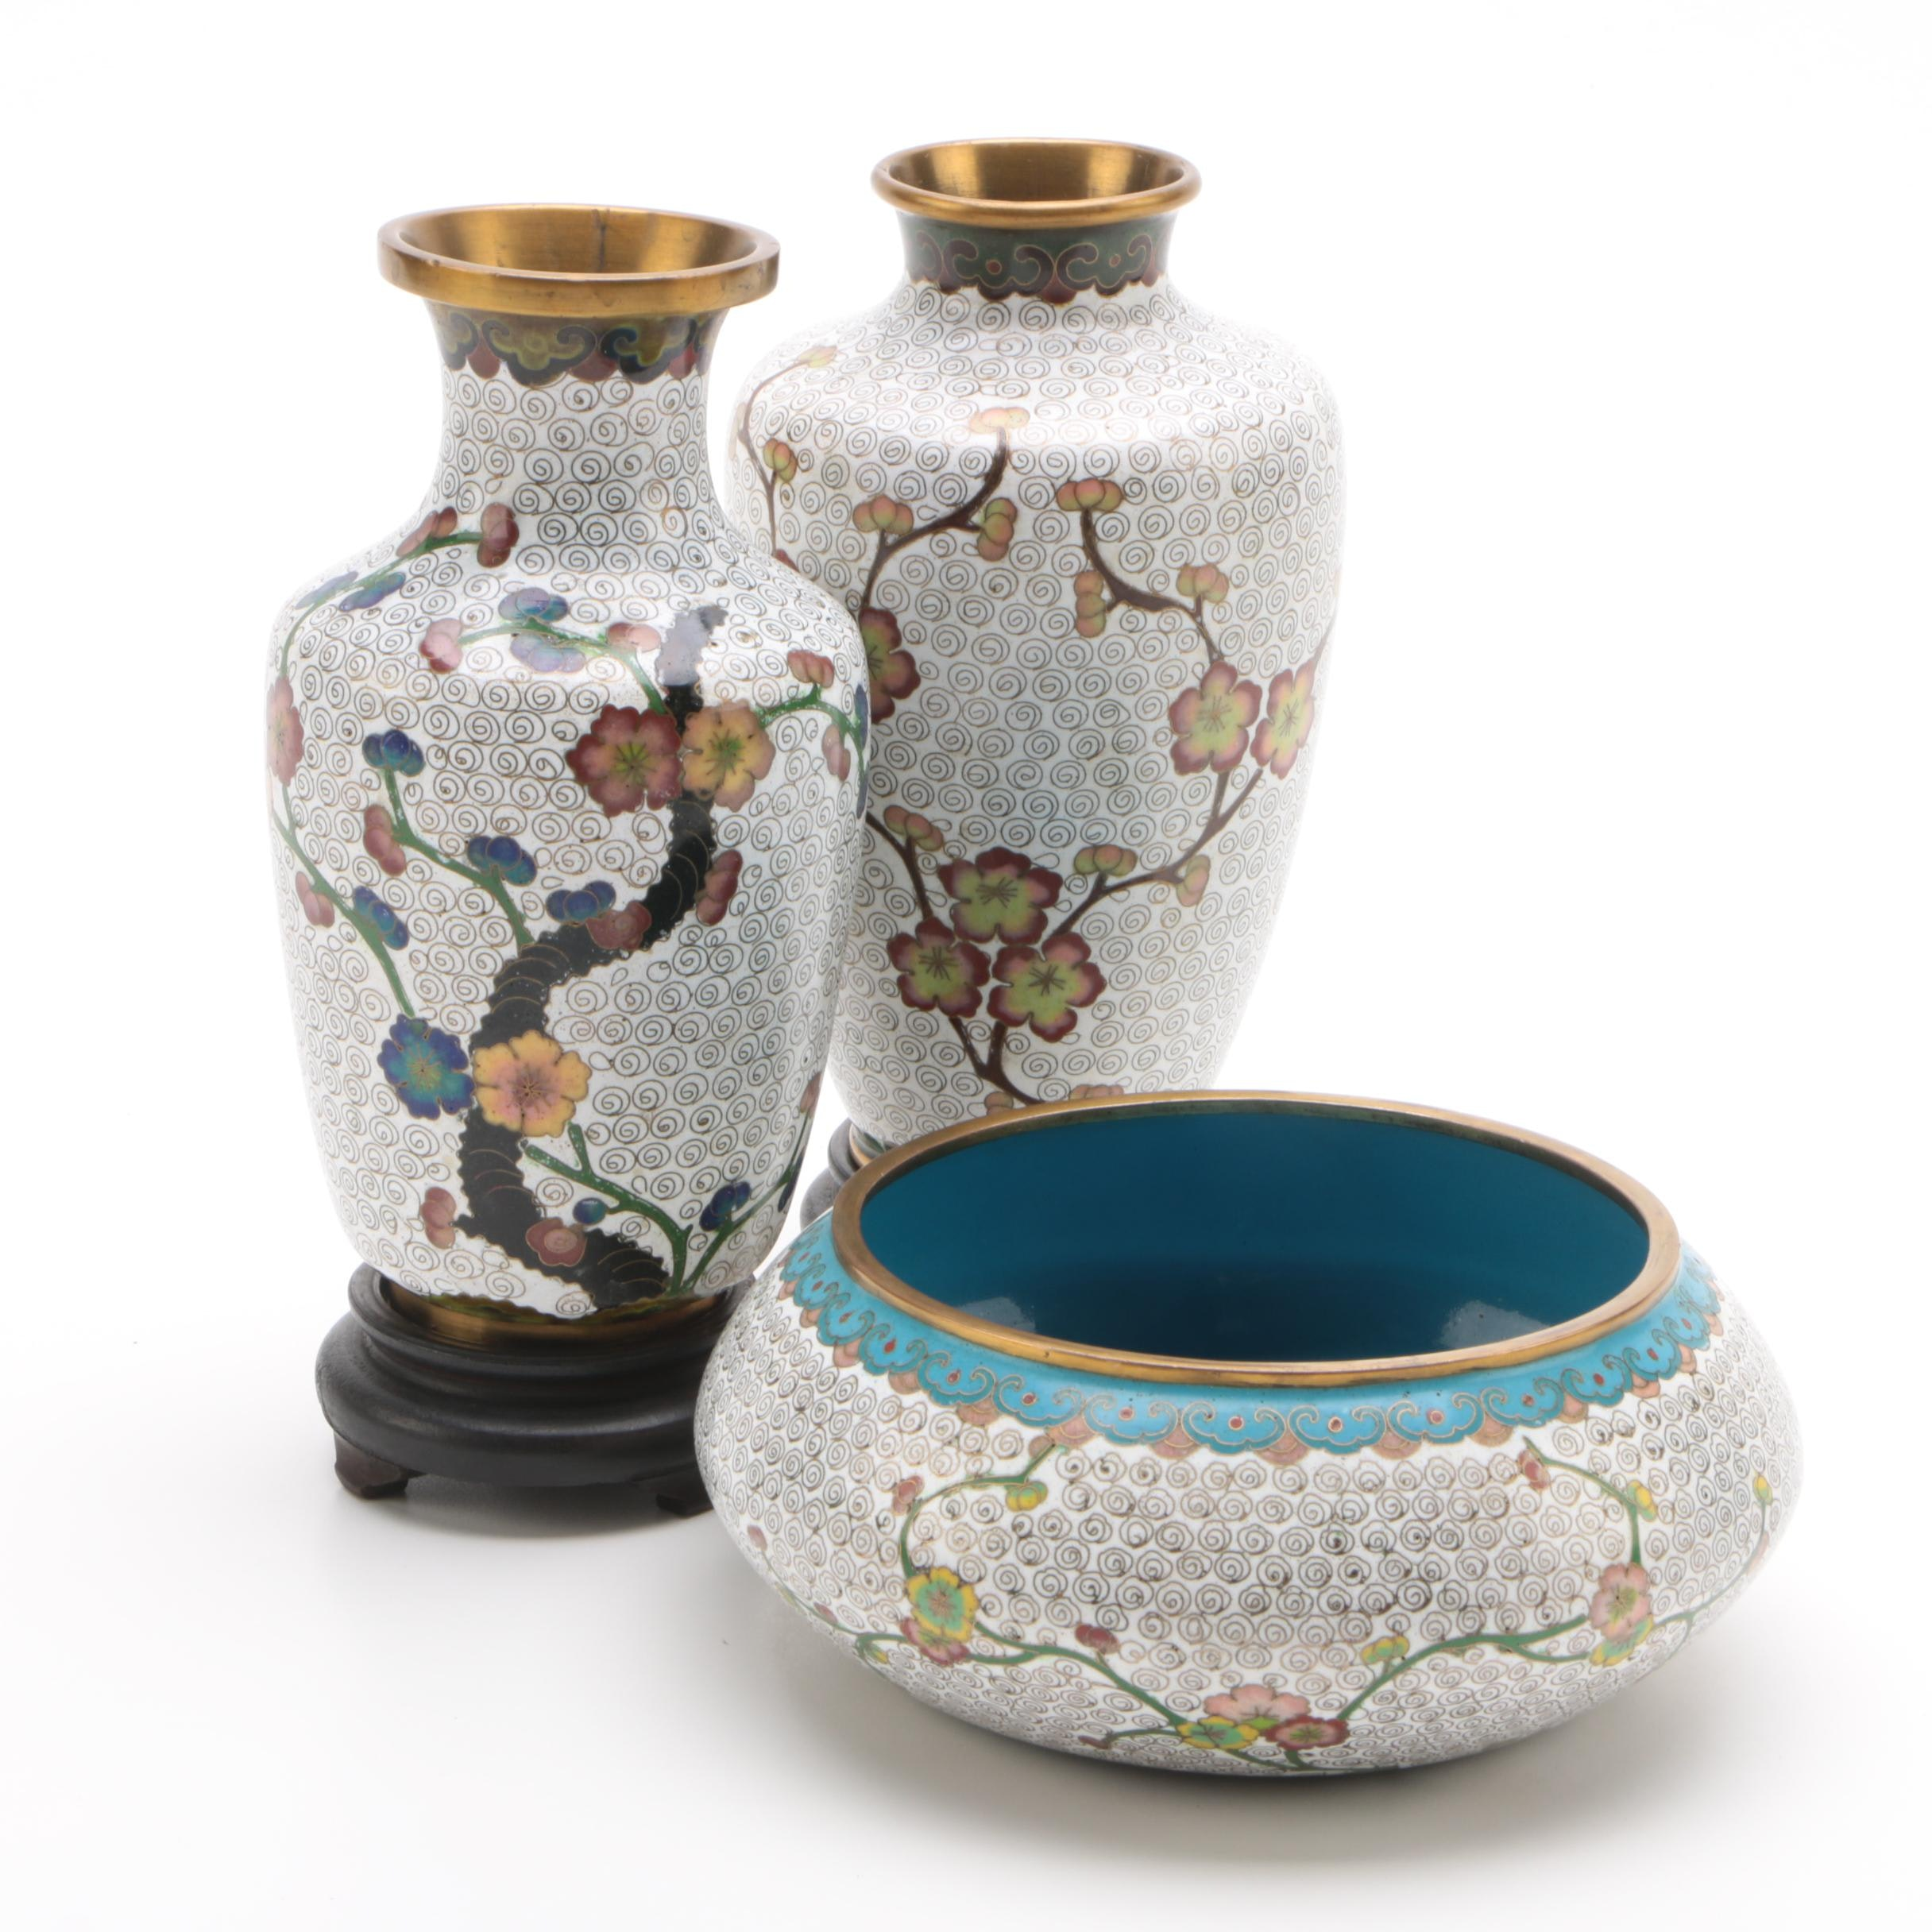 Chinese Cloisonné Bowl and Vases with Wooden Stands